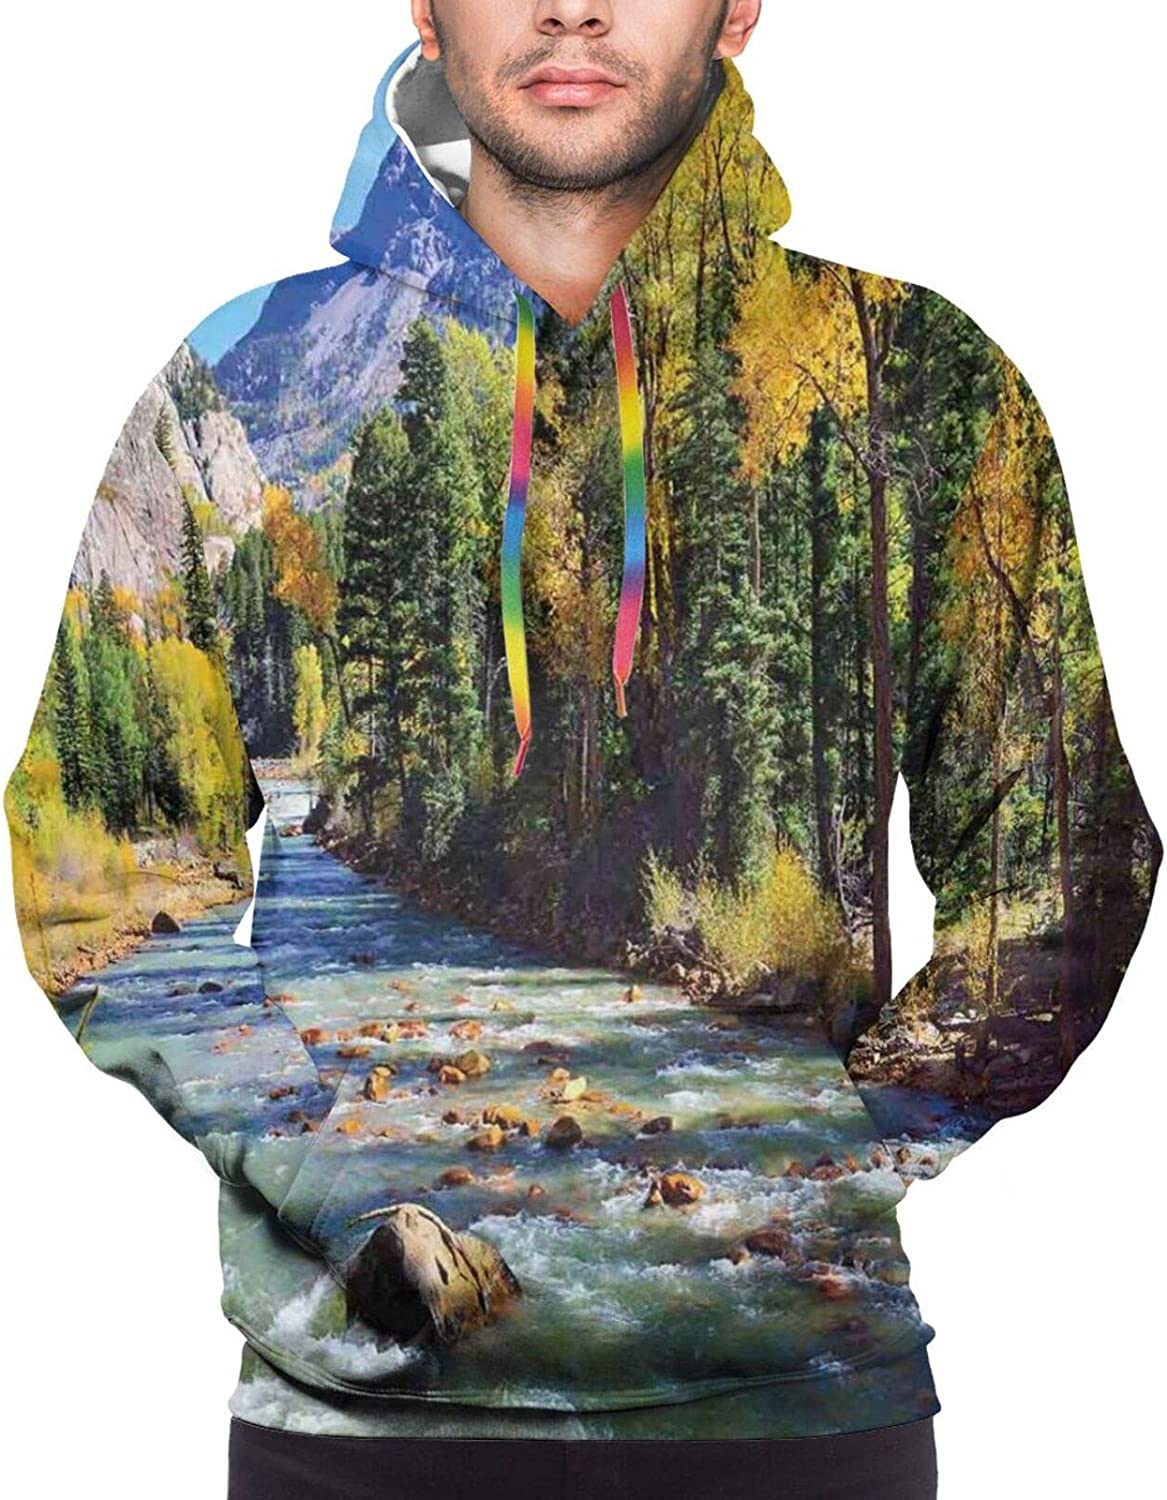 TENJONE Men's Hoodies Sweatshirts,Mountains Celtic Style Great Outdoors Symbol of Adventure and Camping